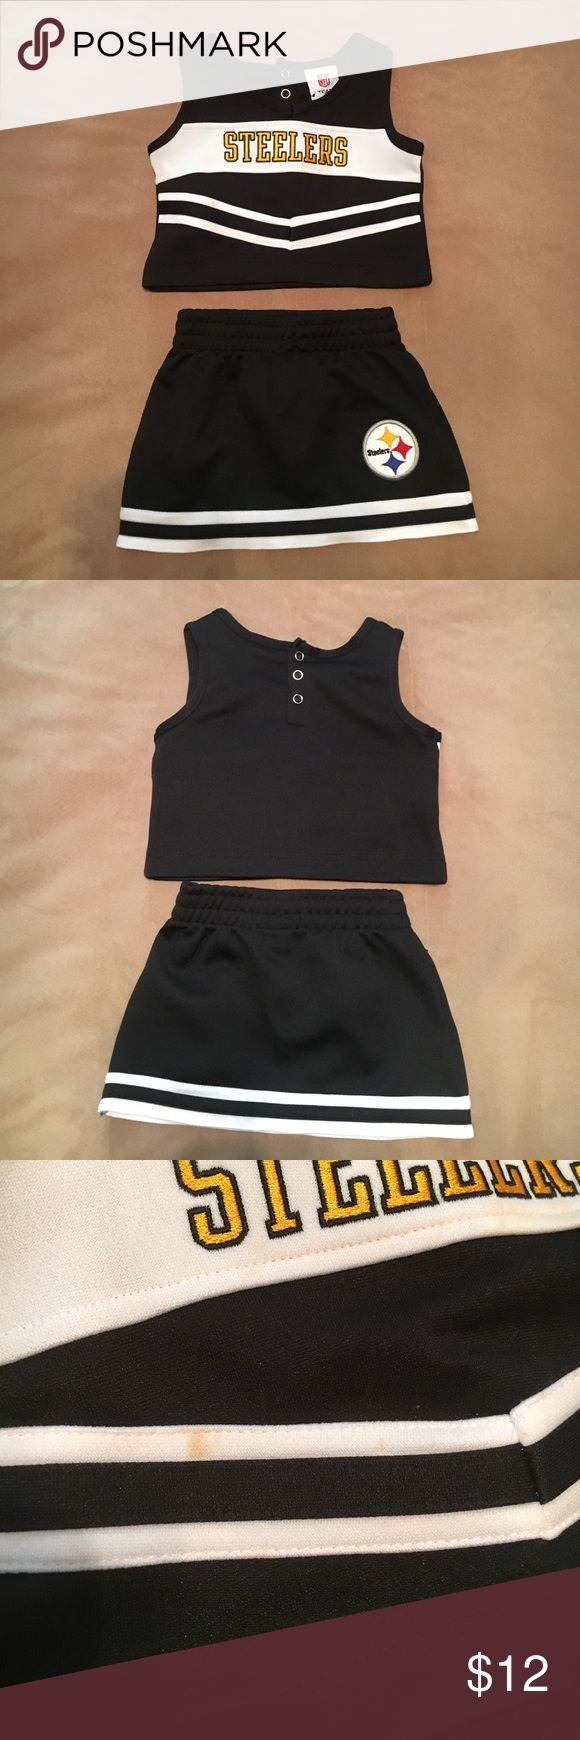 Baby steelers shirt and tank top Adorable toddlers Steelers skirt and tank top.  One spot, but worn once or twice.  18 months nfl  Matching Sets